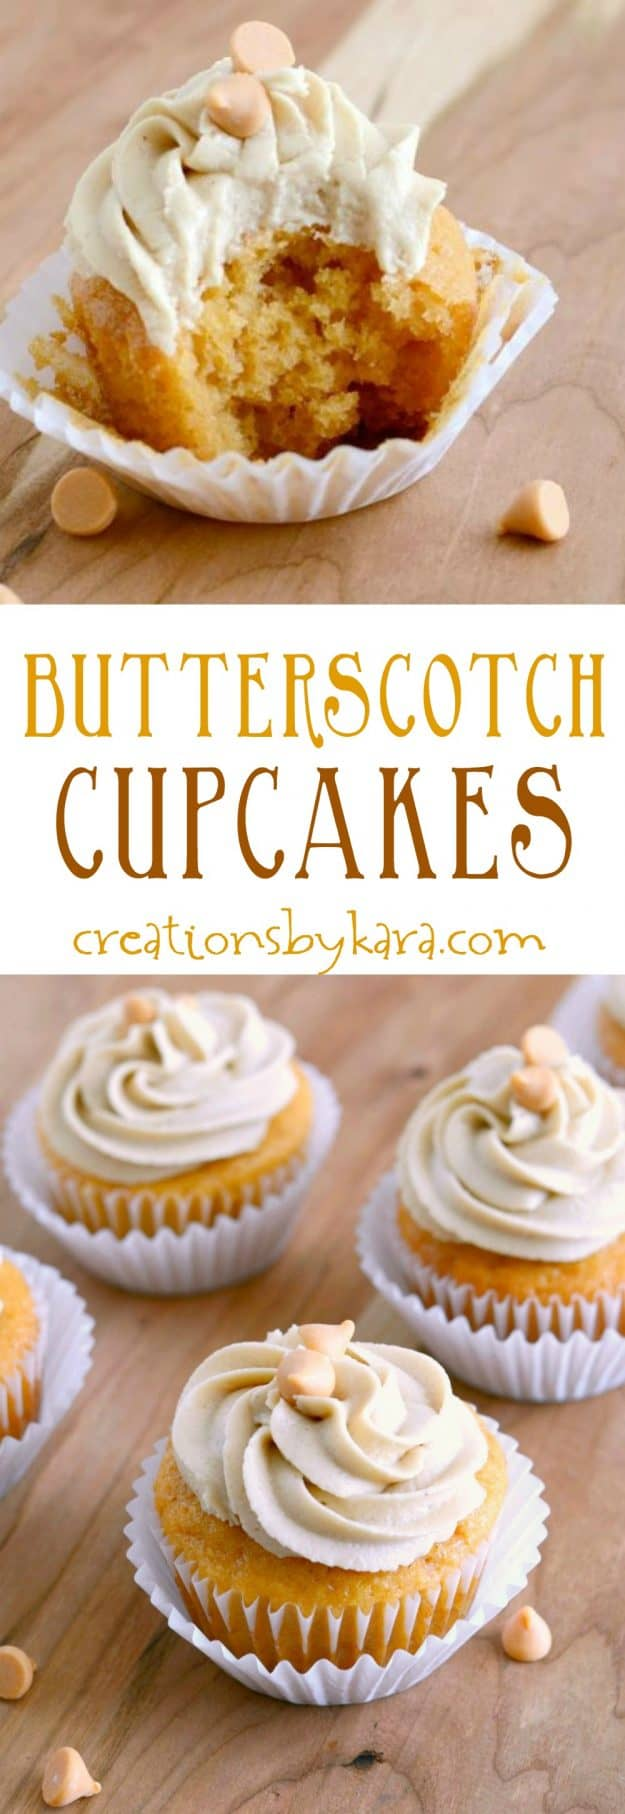 butterscotch cupcakes recipe collage